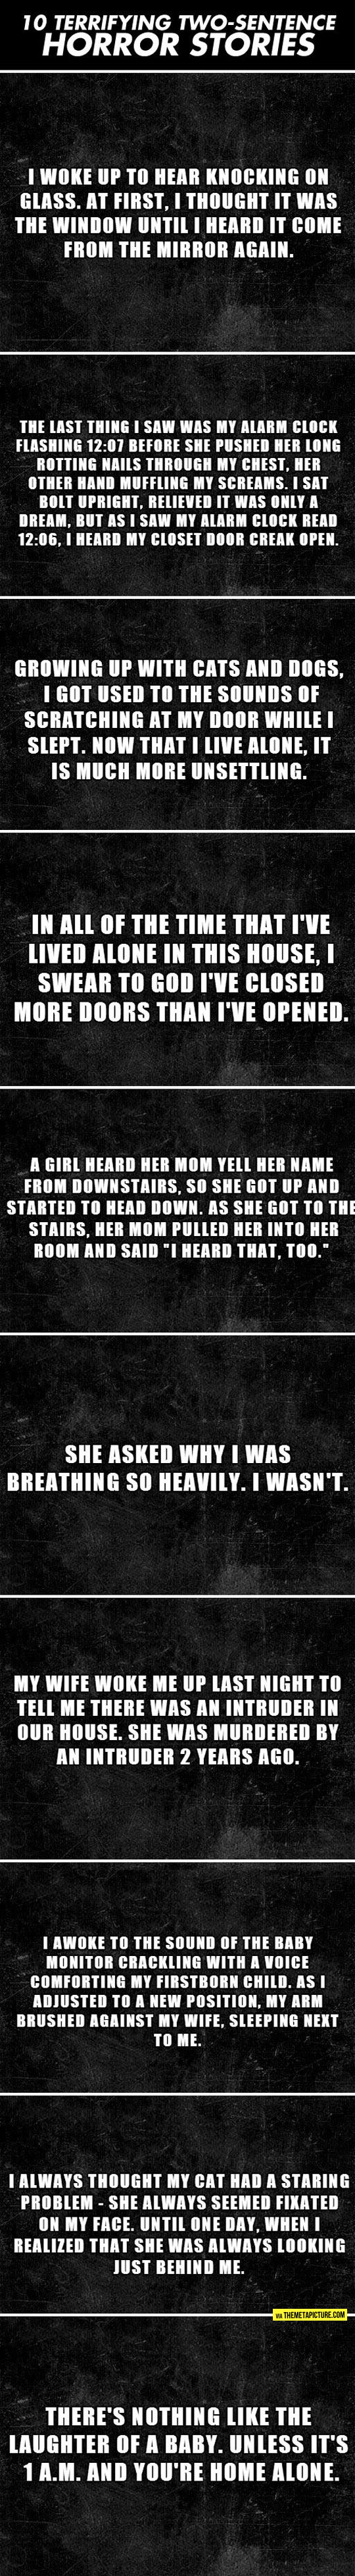 scary-terrifying-two-sentence-stories